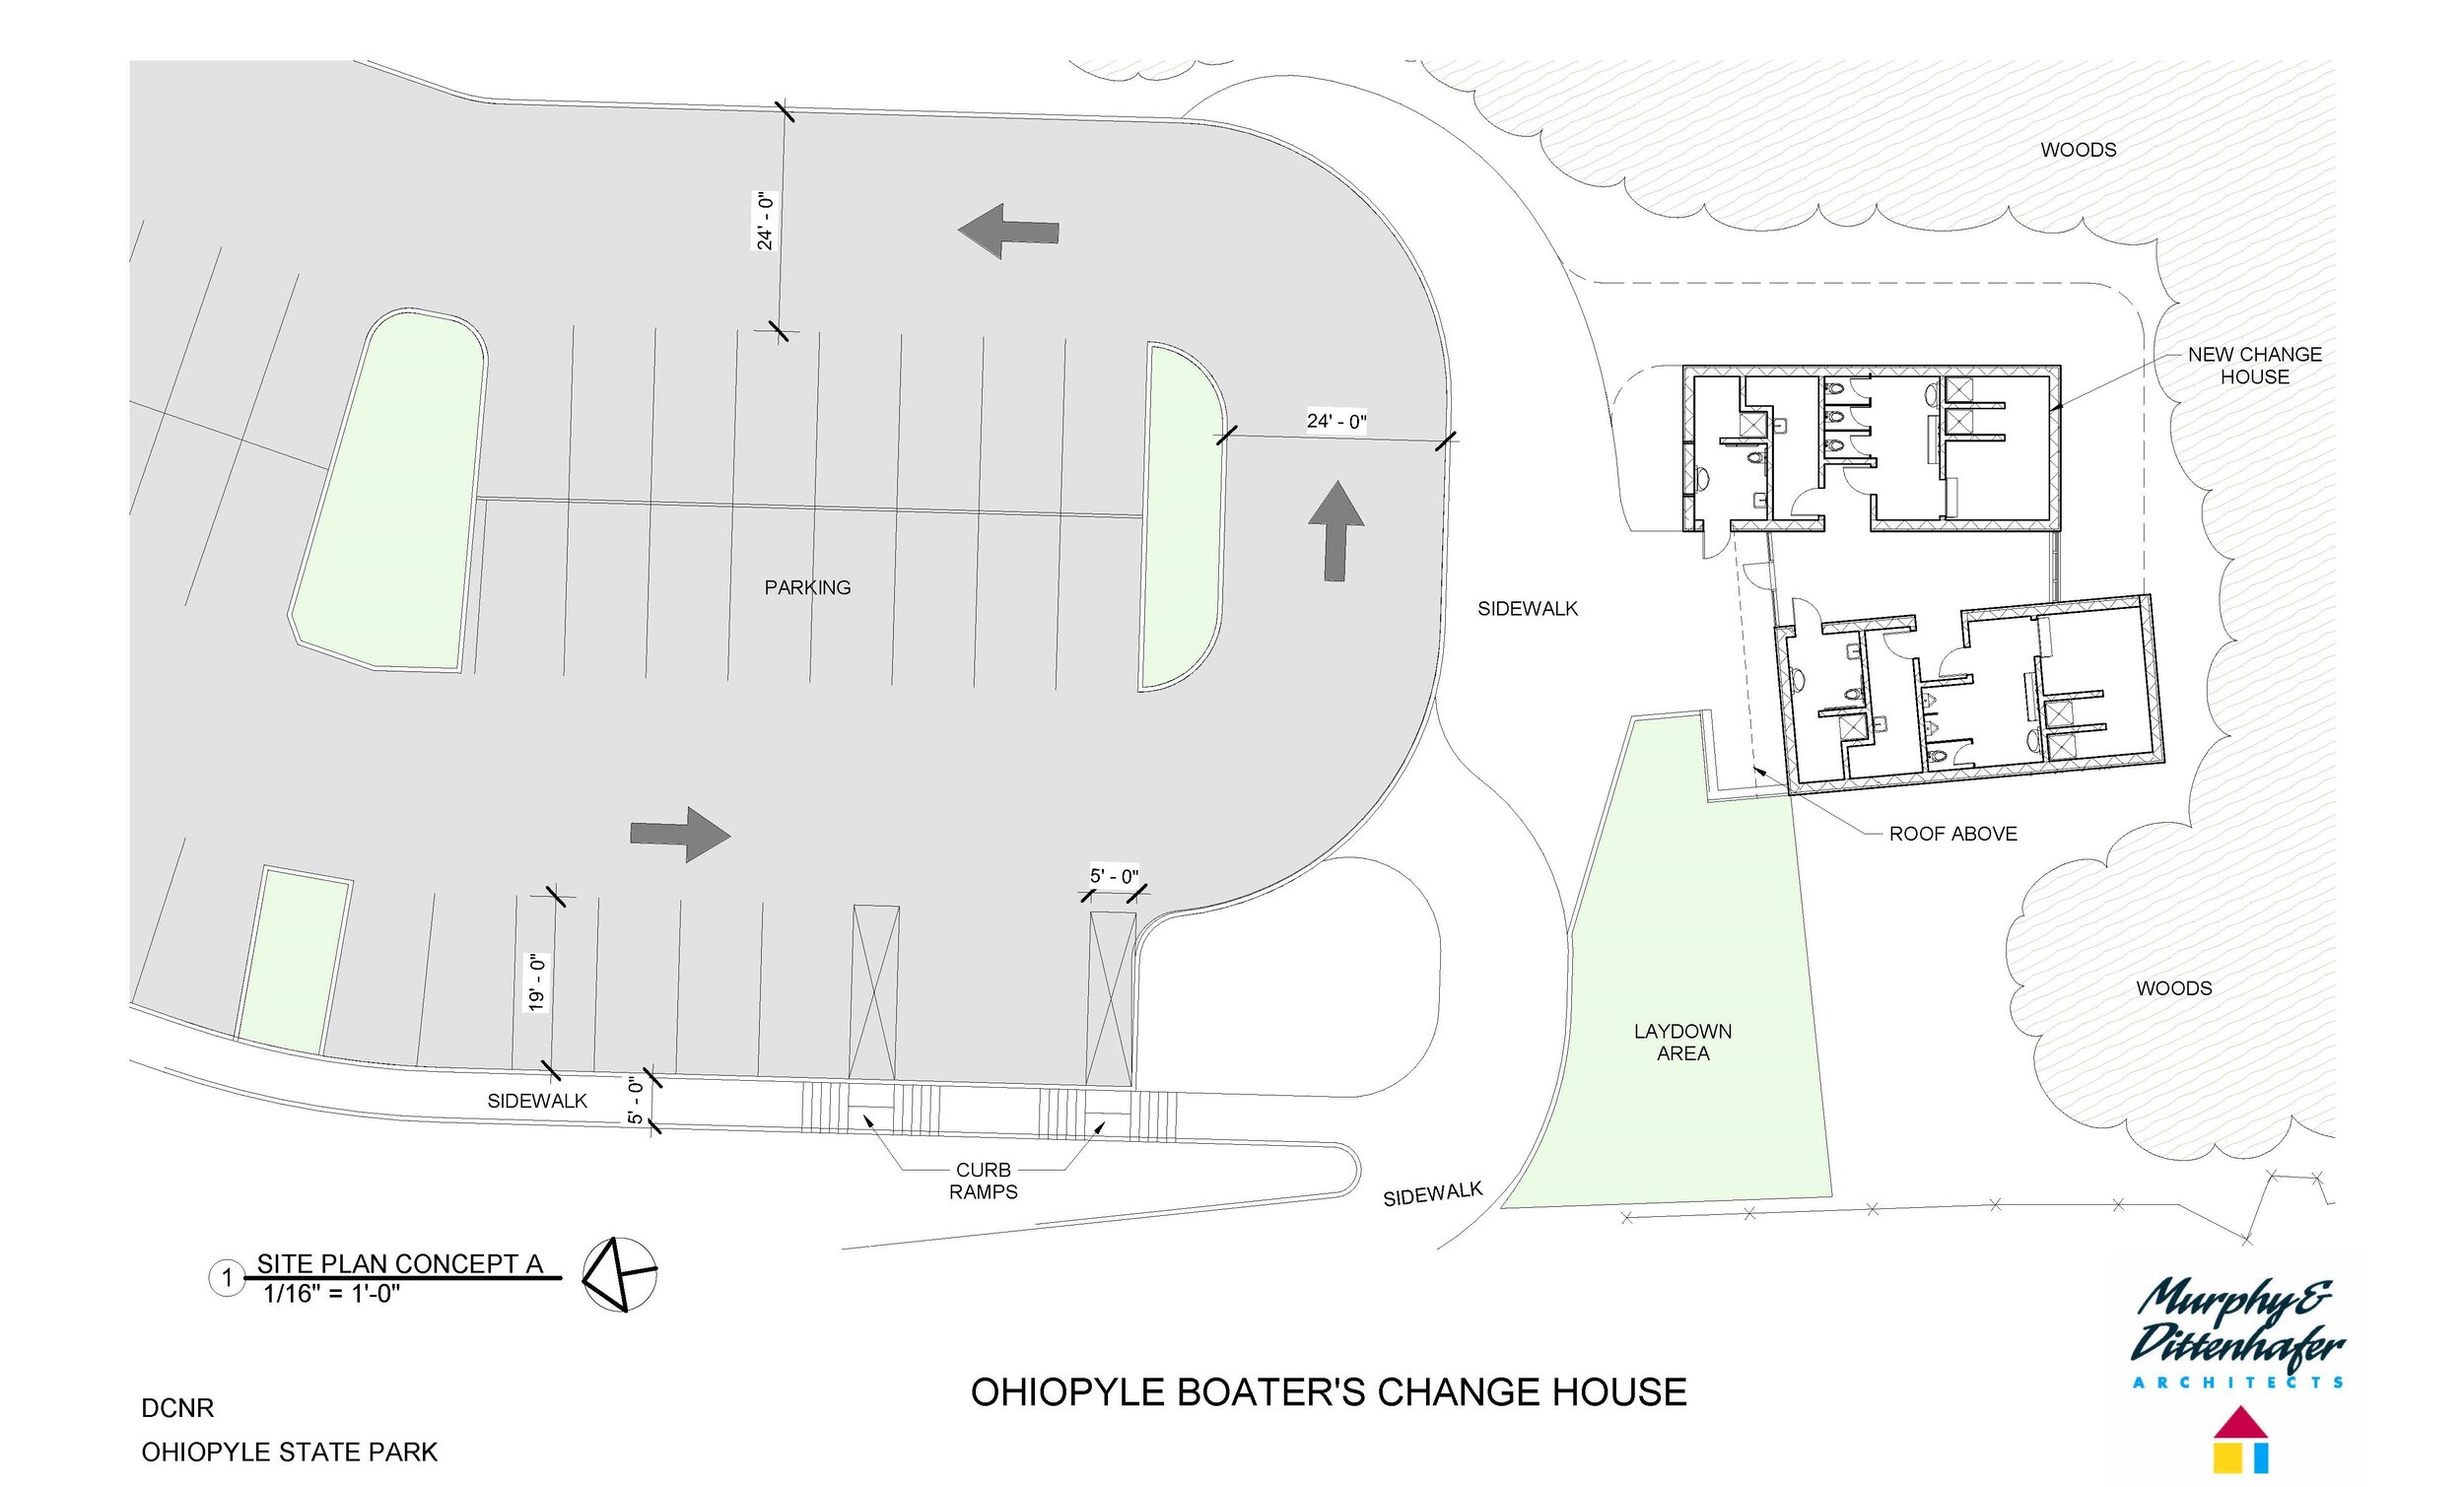 Ohiopyle Boater's Change House Site Plan